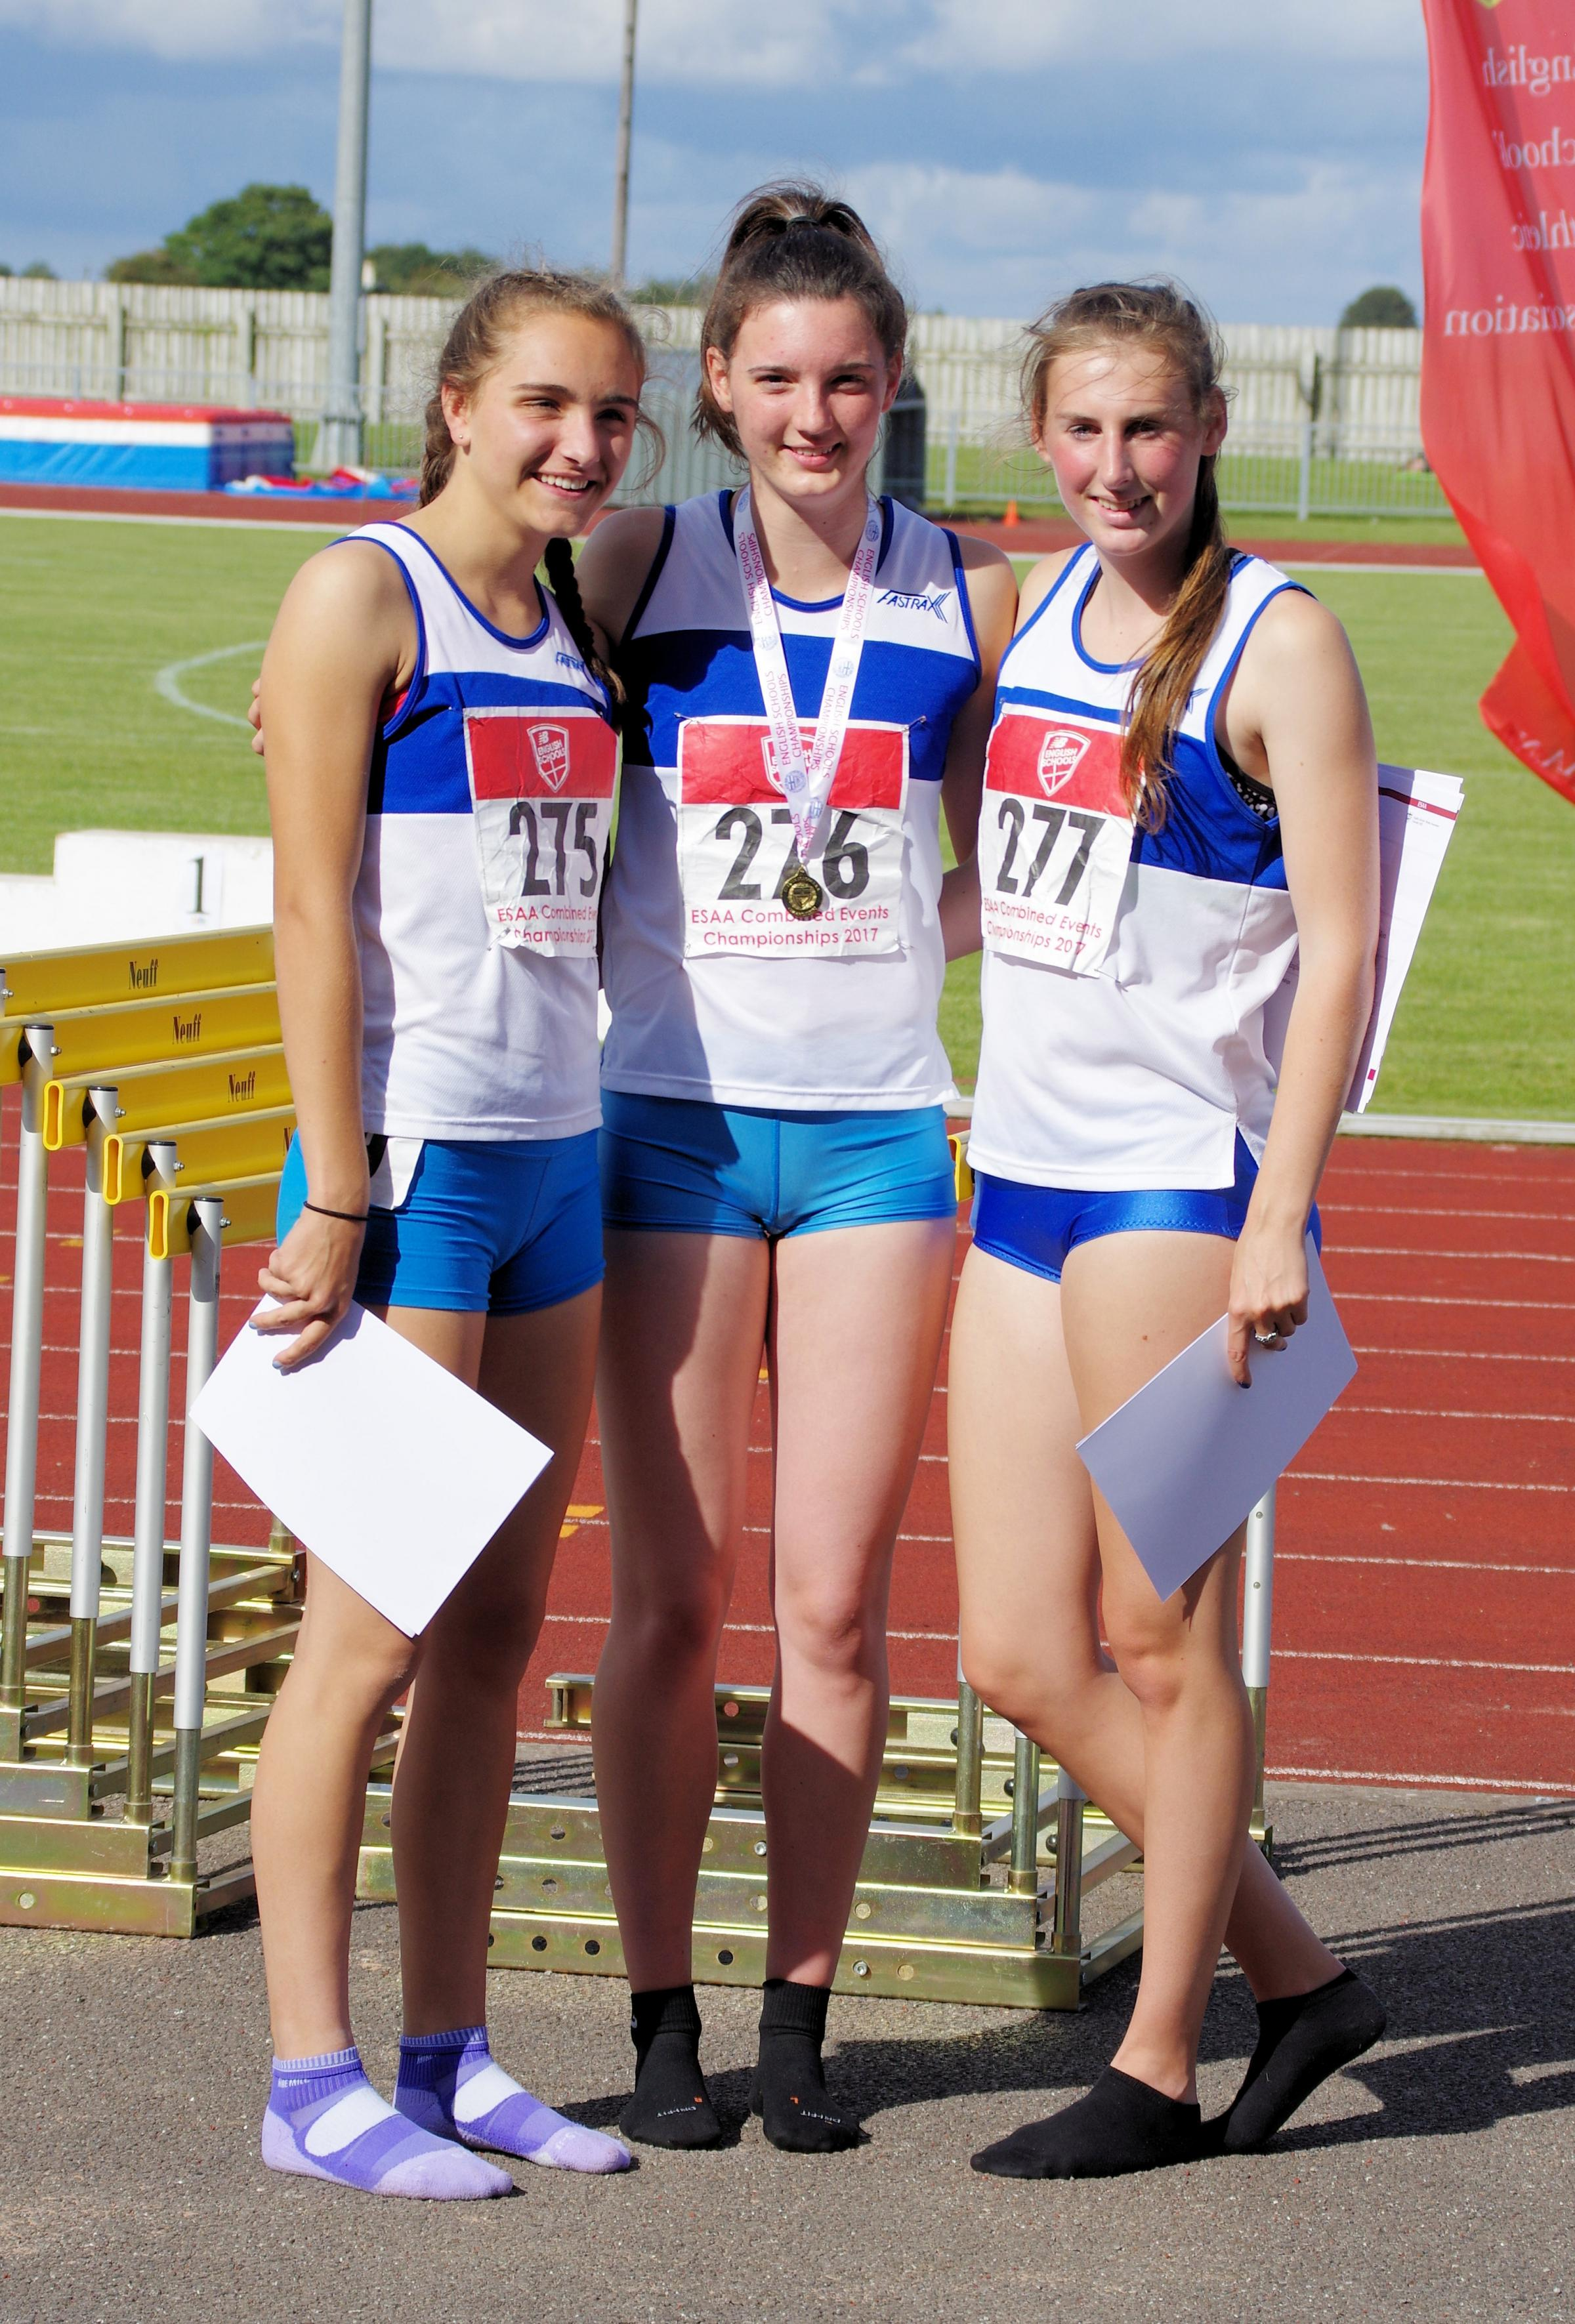 DELIGHT: Oxfordshire's athletes celebrate winning team silver at the English Schools' Combined Events Championships. From left: Katie Hetherington, Jade O'Dowda, Rebecca Scott Picture: Ian Marriott